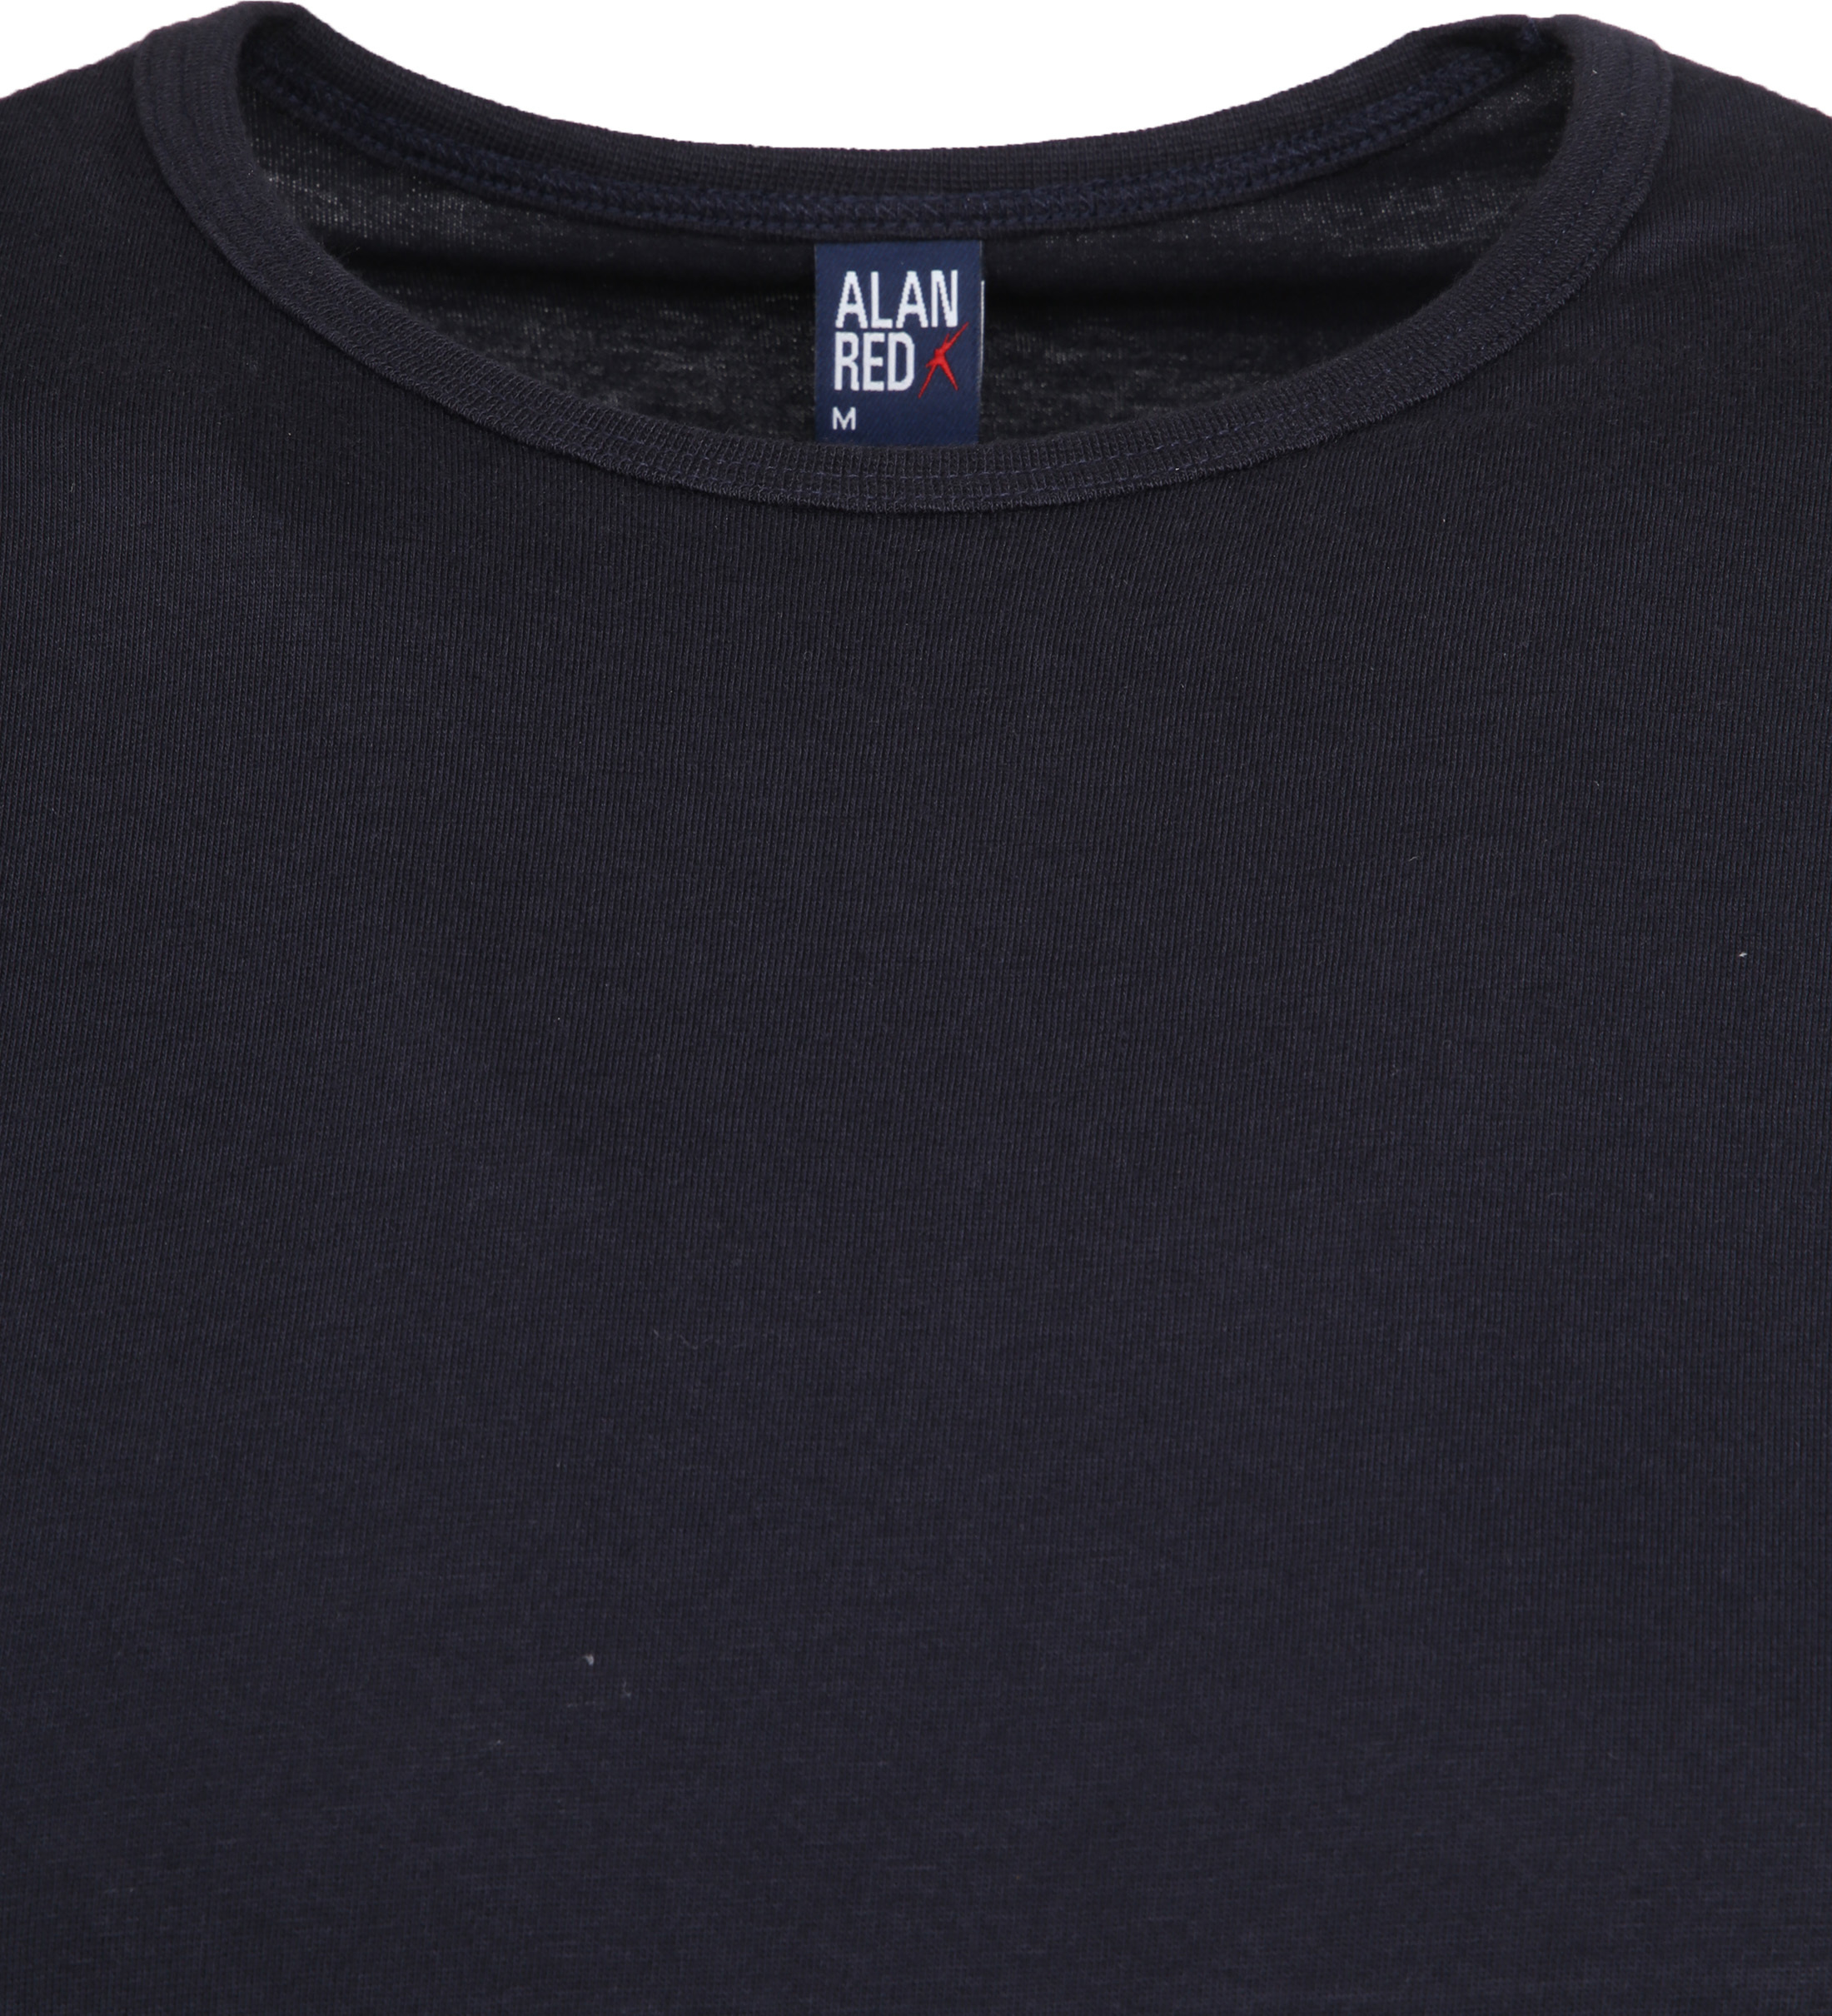 Alan Red Derby Extra Lang T-Shirt Navy (1Pack) foto 1